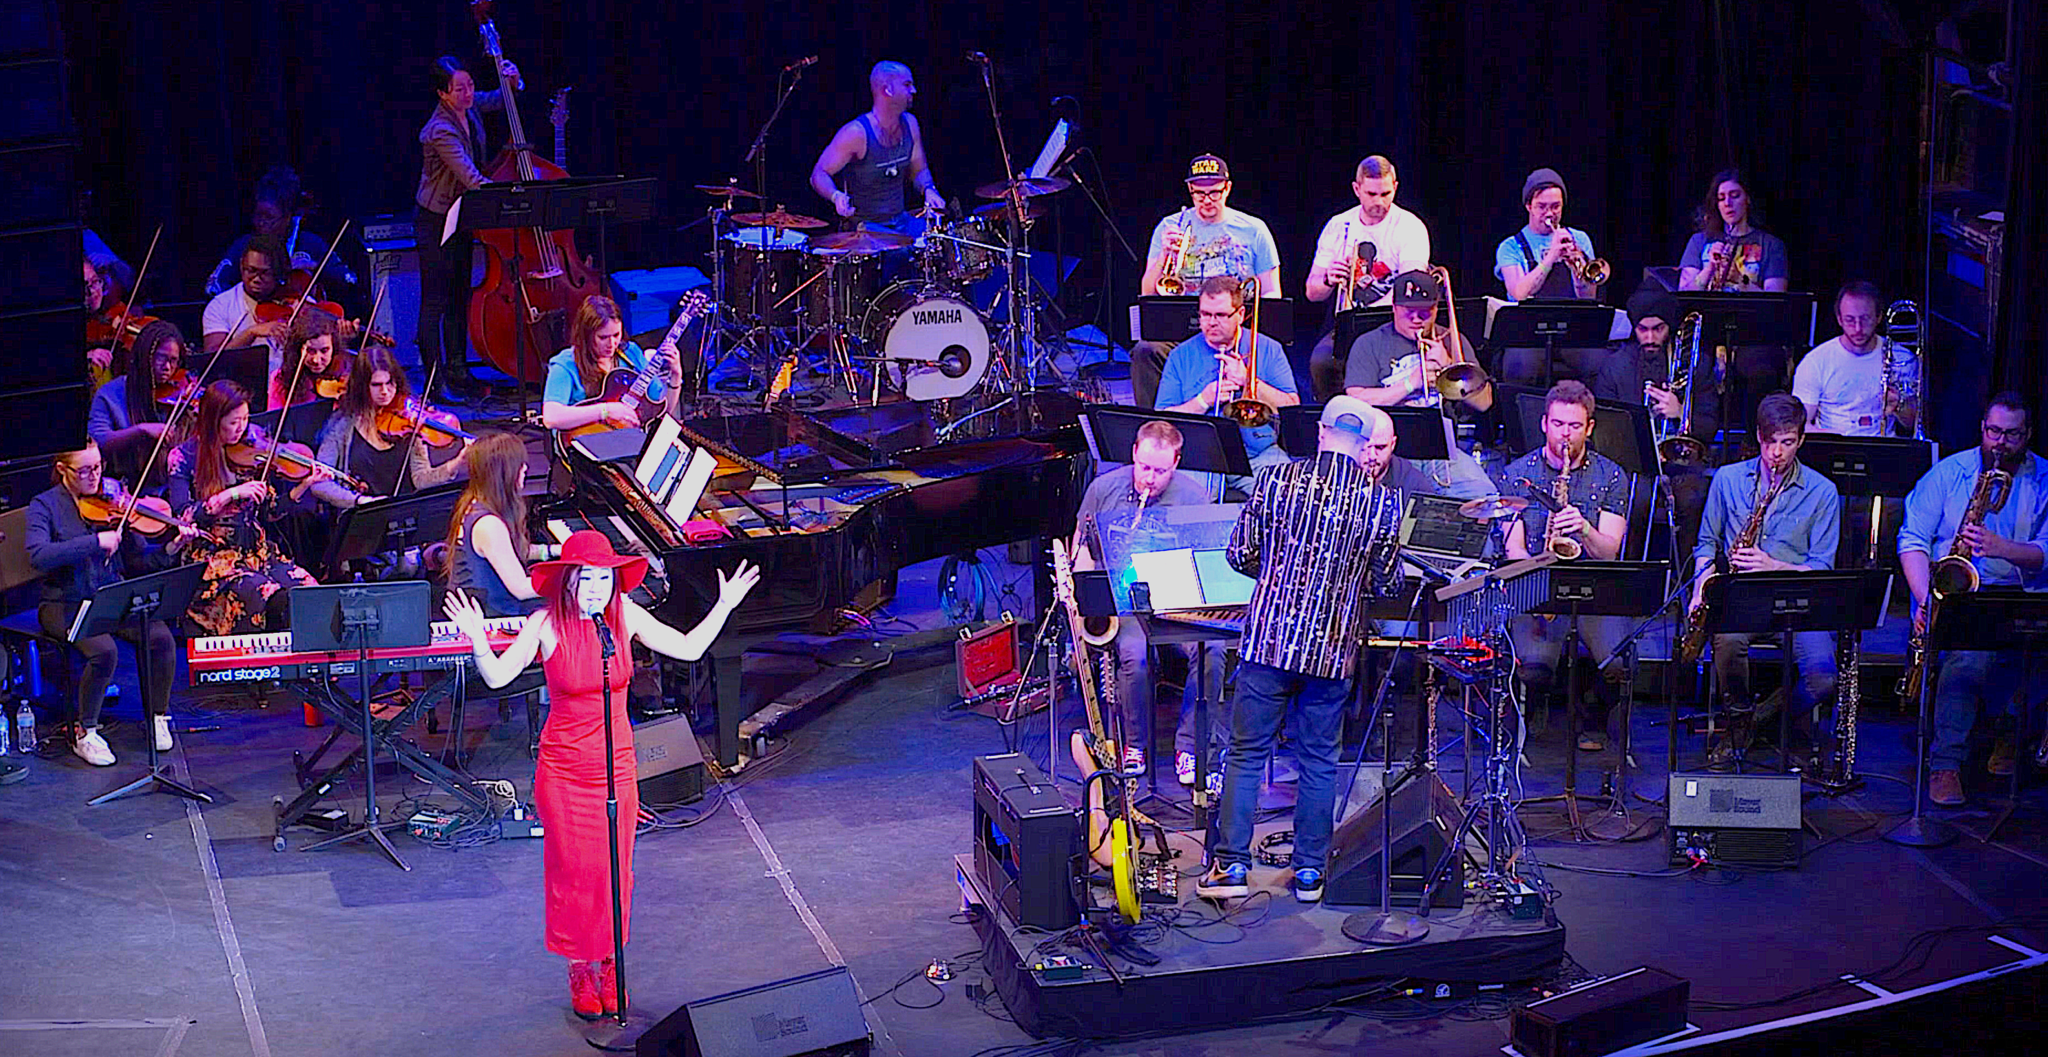 Charlie Rosen's 8-Bit Big Band with special guest Grace Kelly merges video game themes with Jazz Orchestra!!!